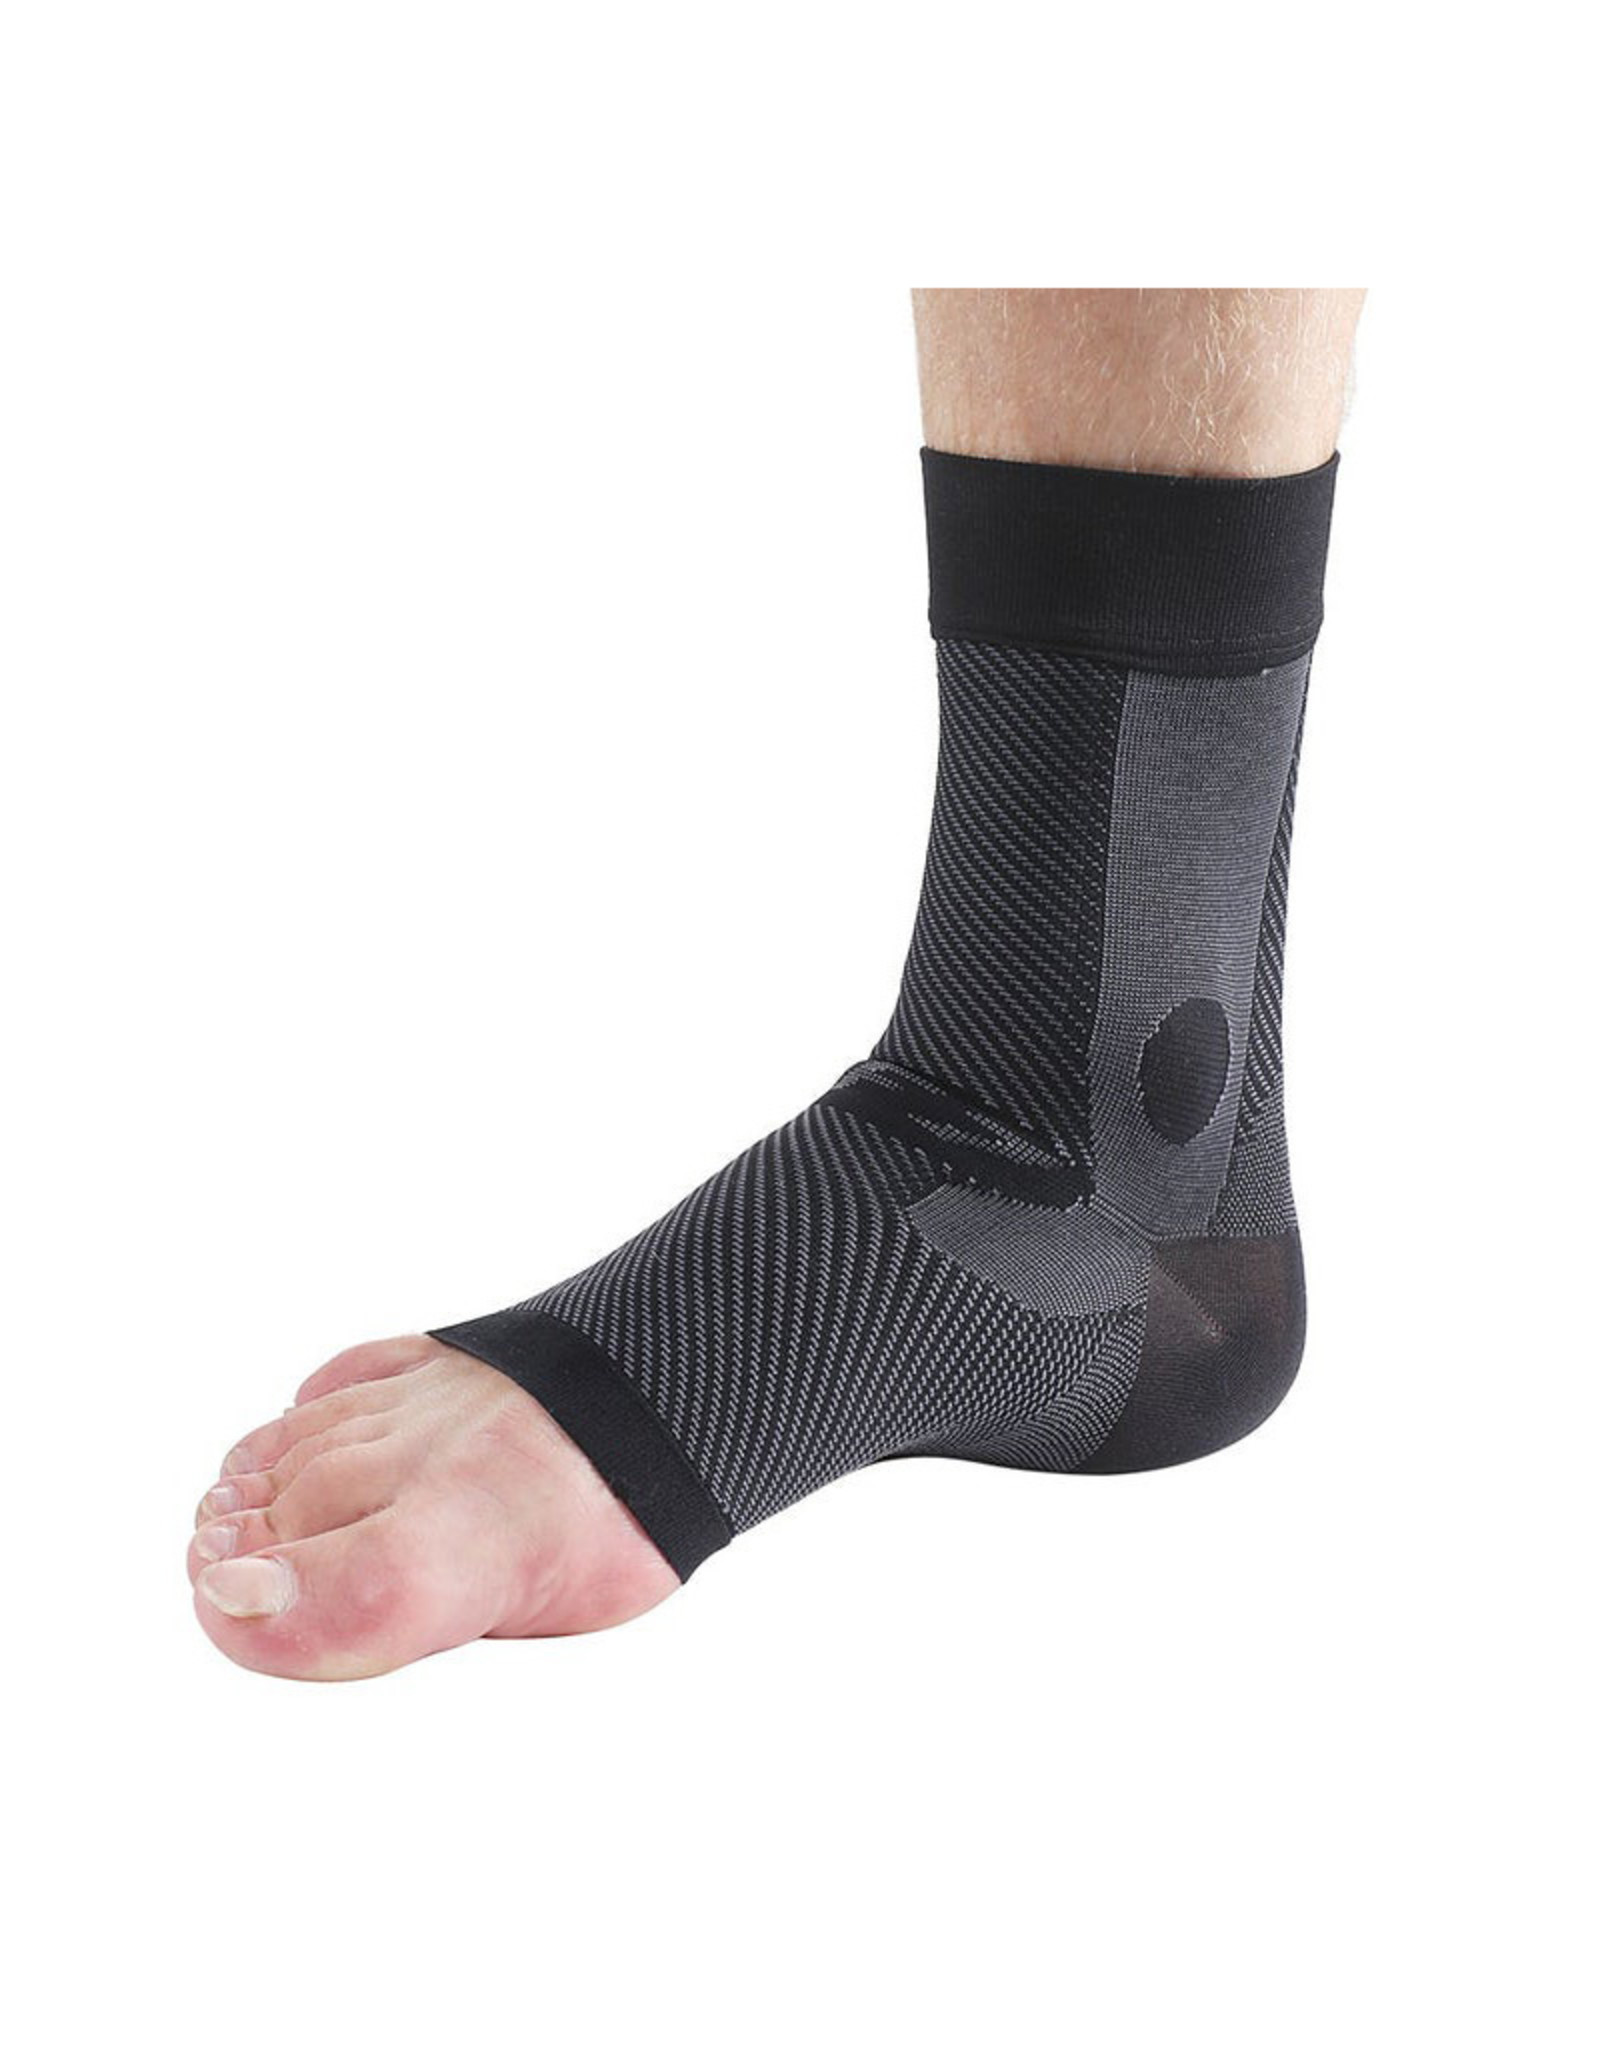 OS1ST AF7 ANKLE BRACING SLEEVE (RIGHT)